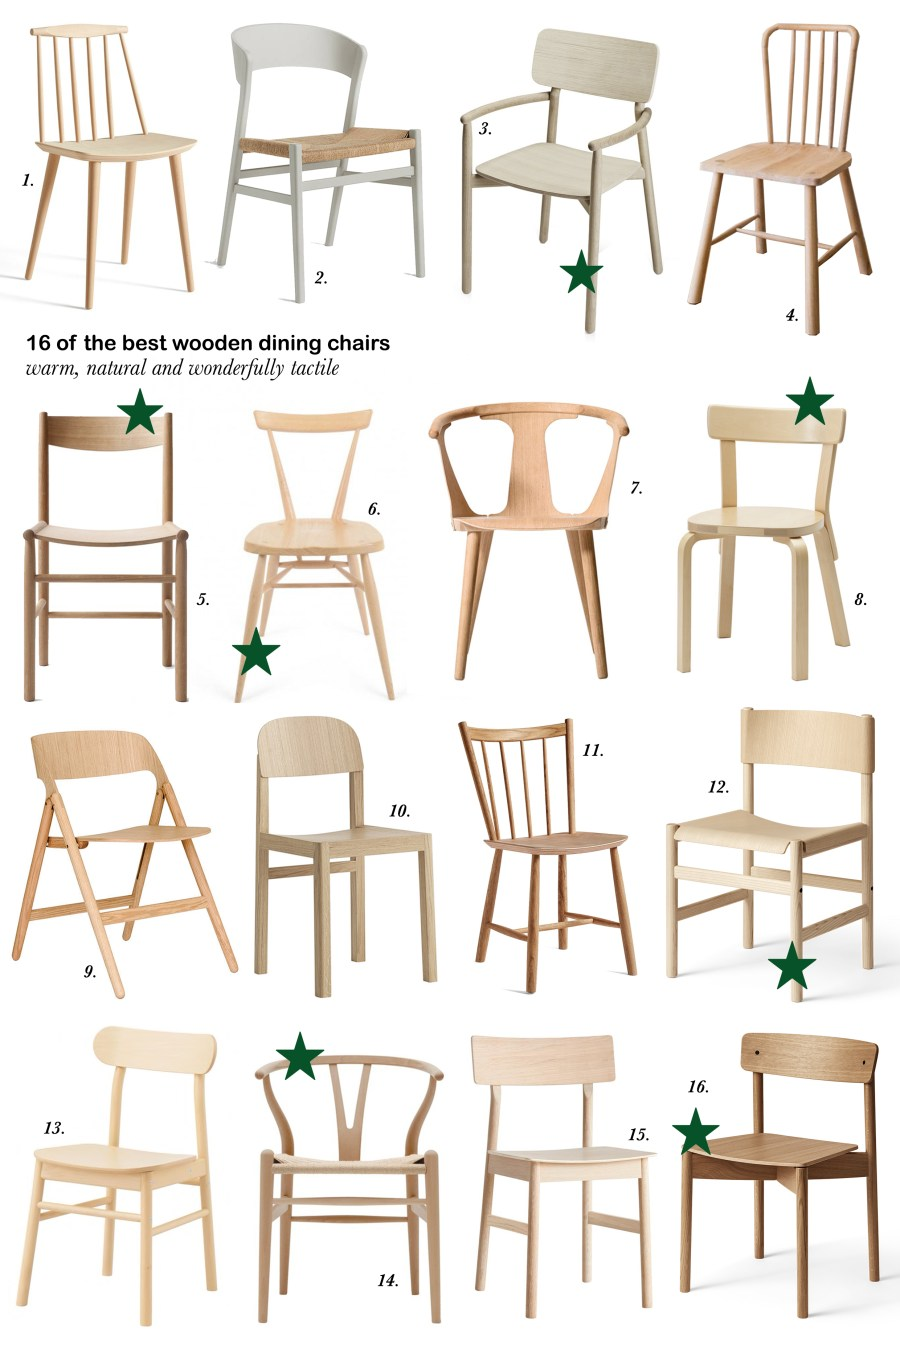 8 of the best simple wooden dining chairs - cate st hill